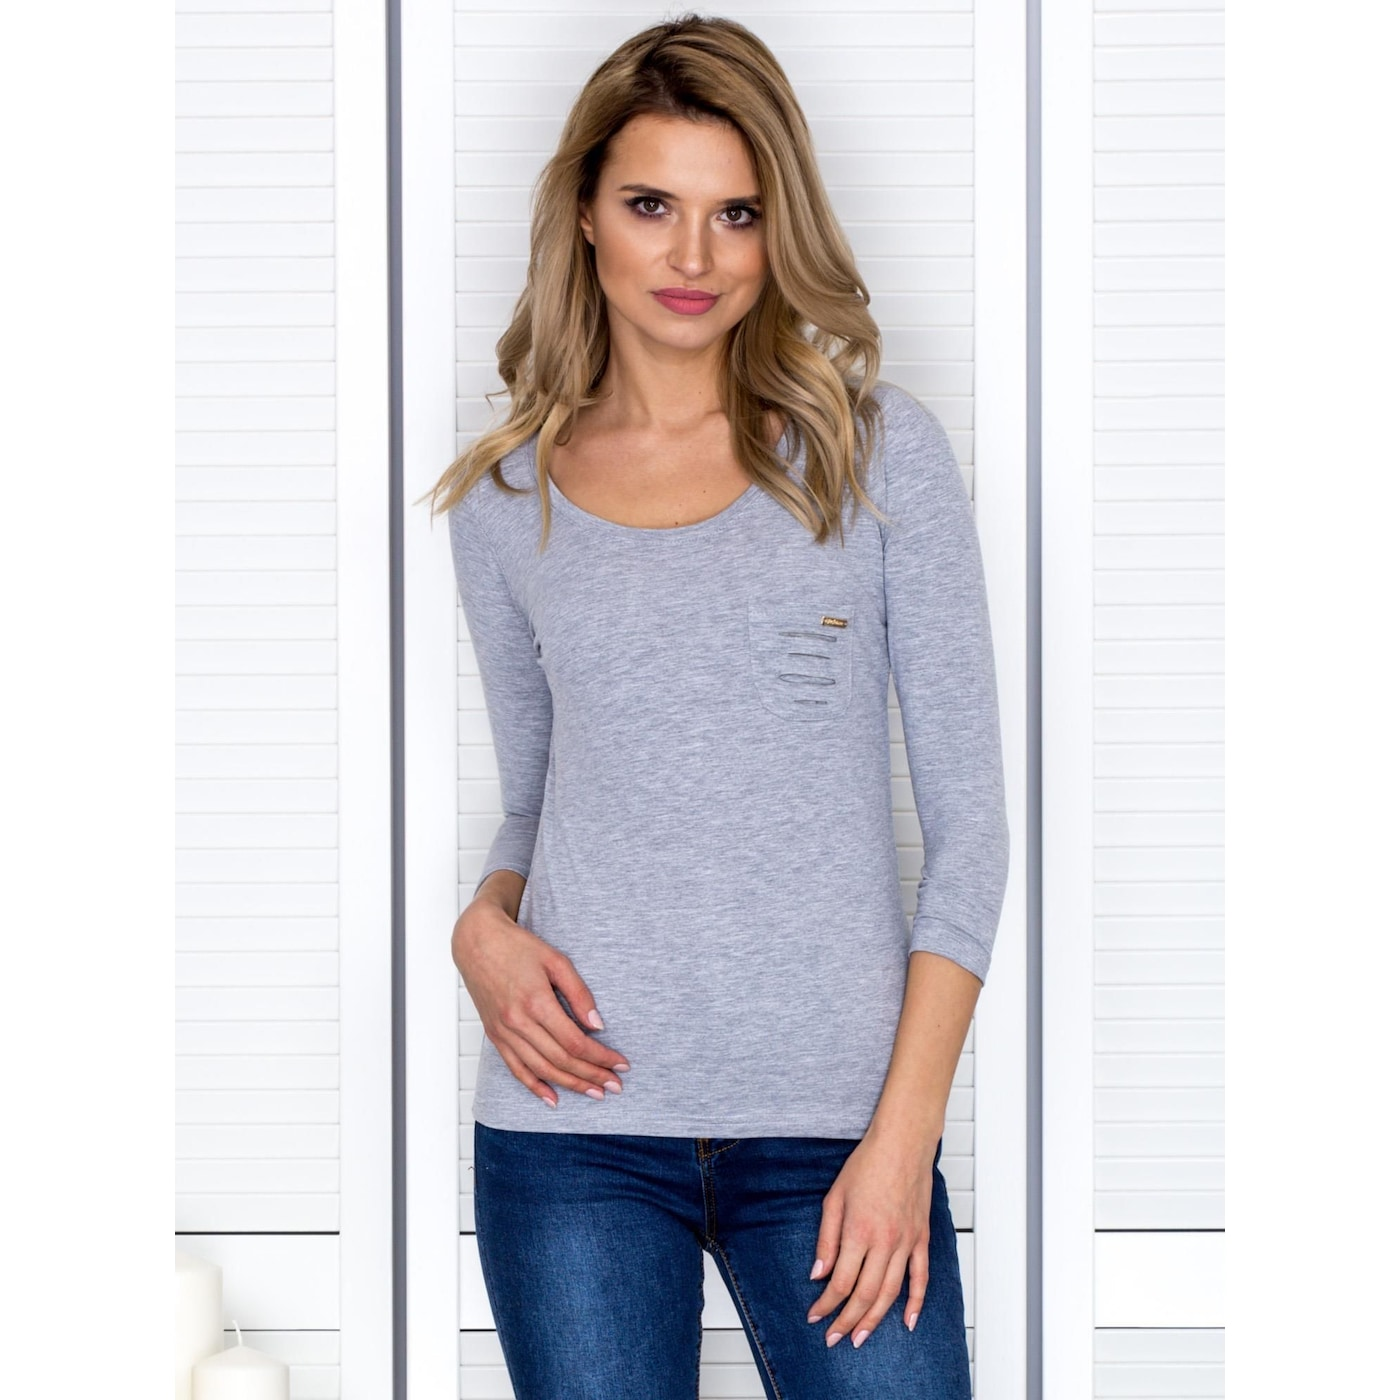 Light gray blouse with cutouts at the back